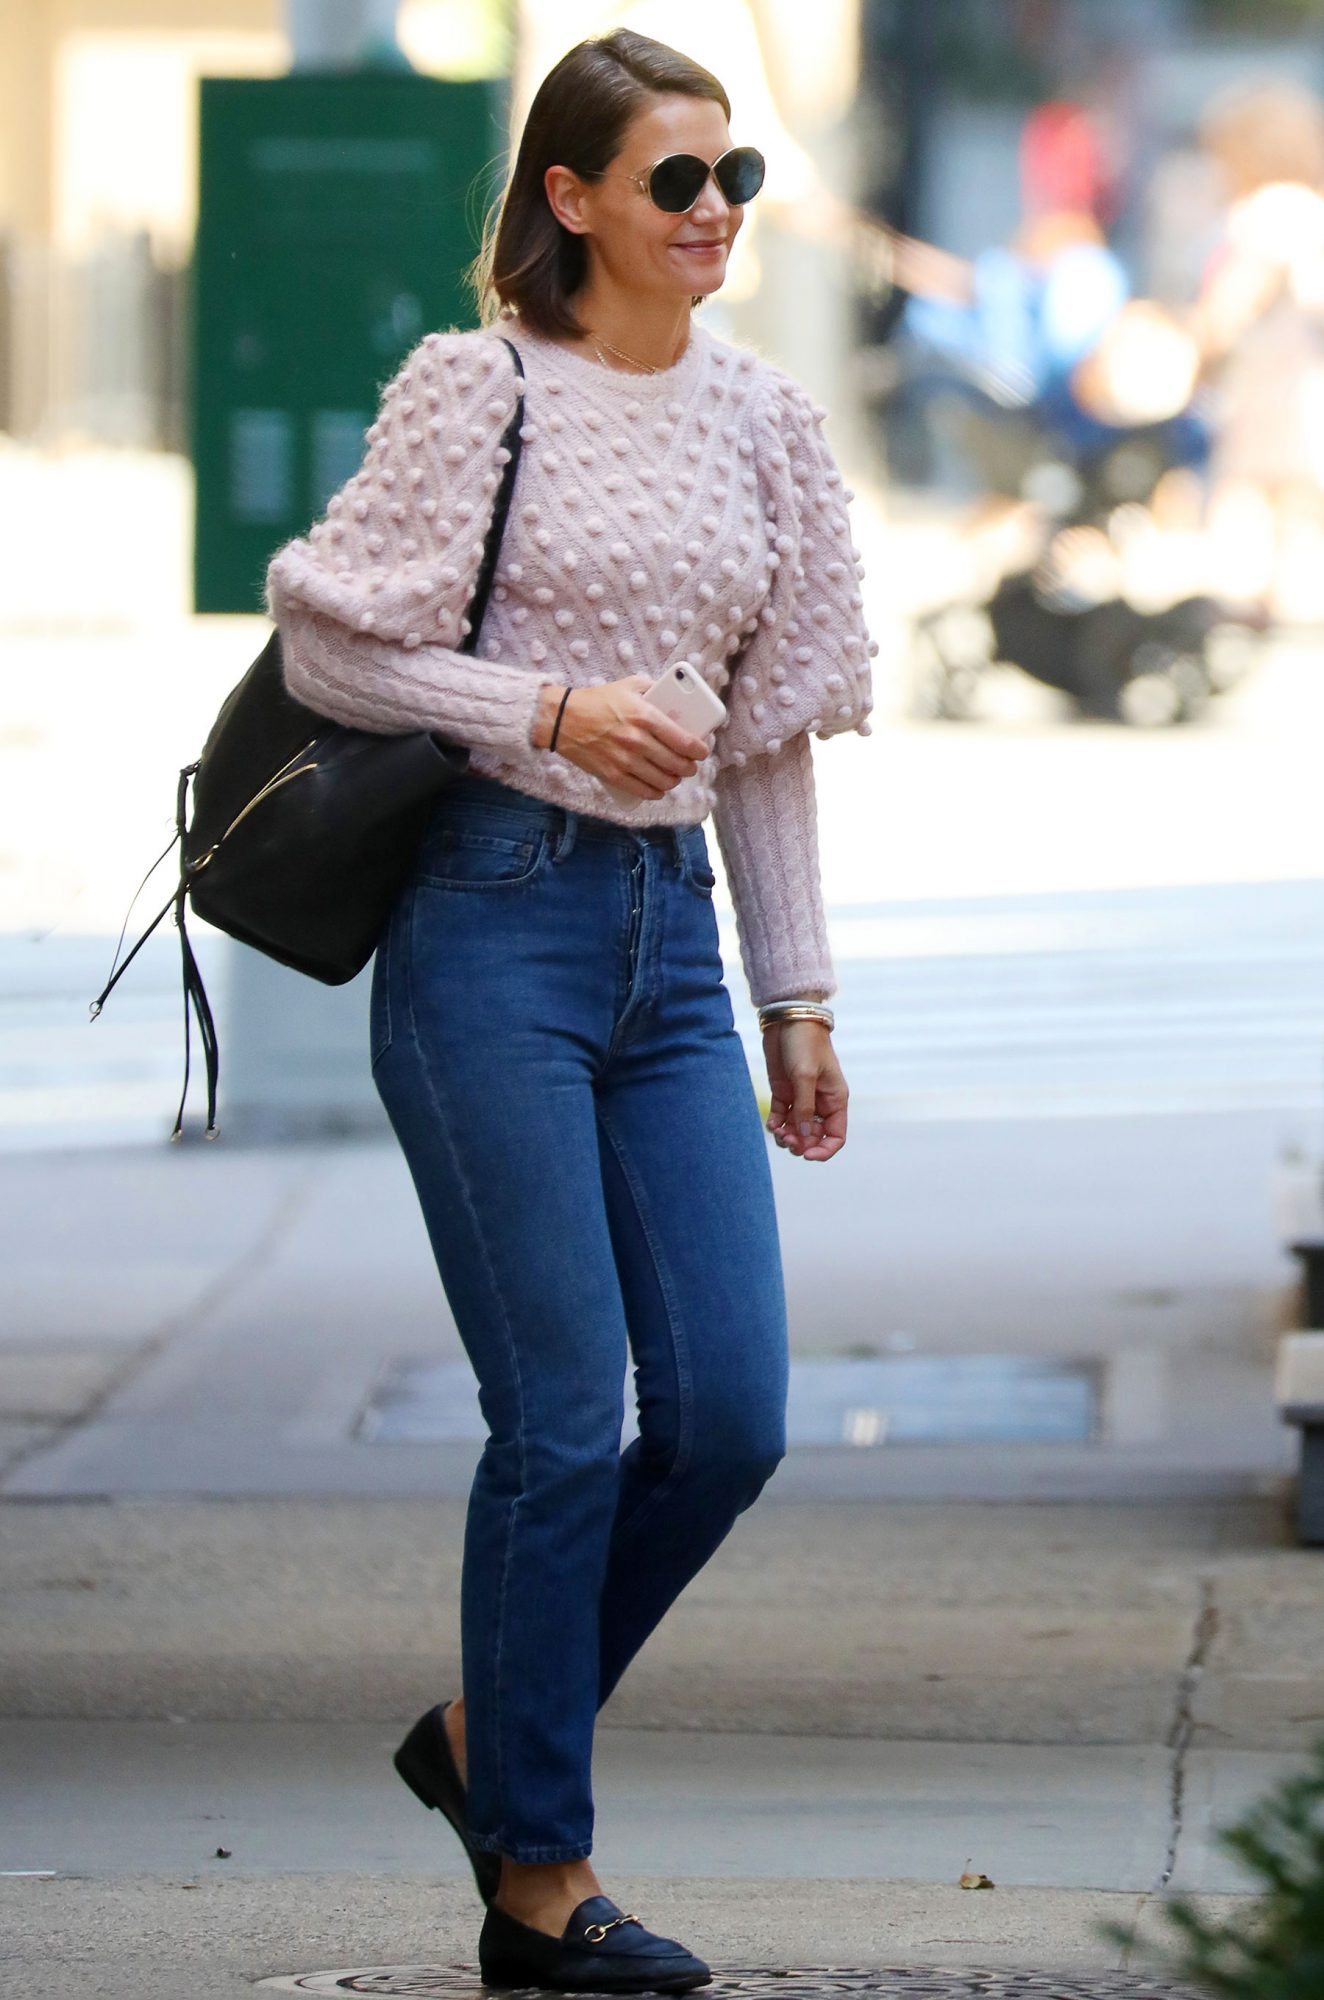 EXCLUSIVE: Katie Holmes steps out in a sweater and jeans in 80 degree weather in NYC.